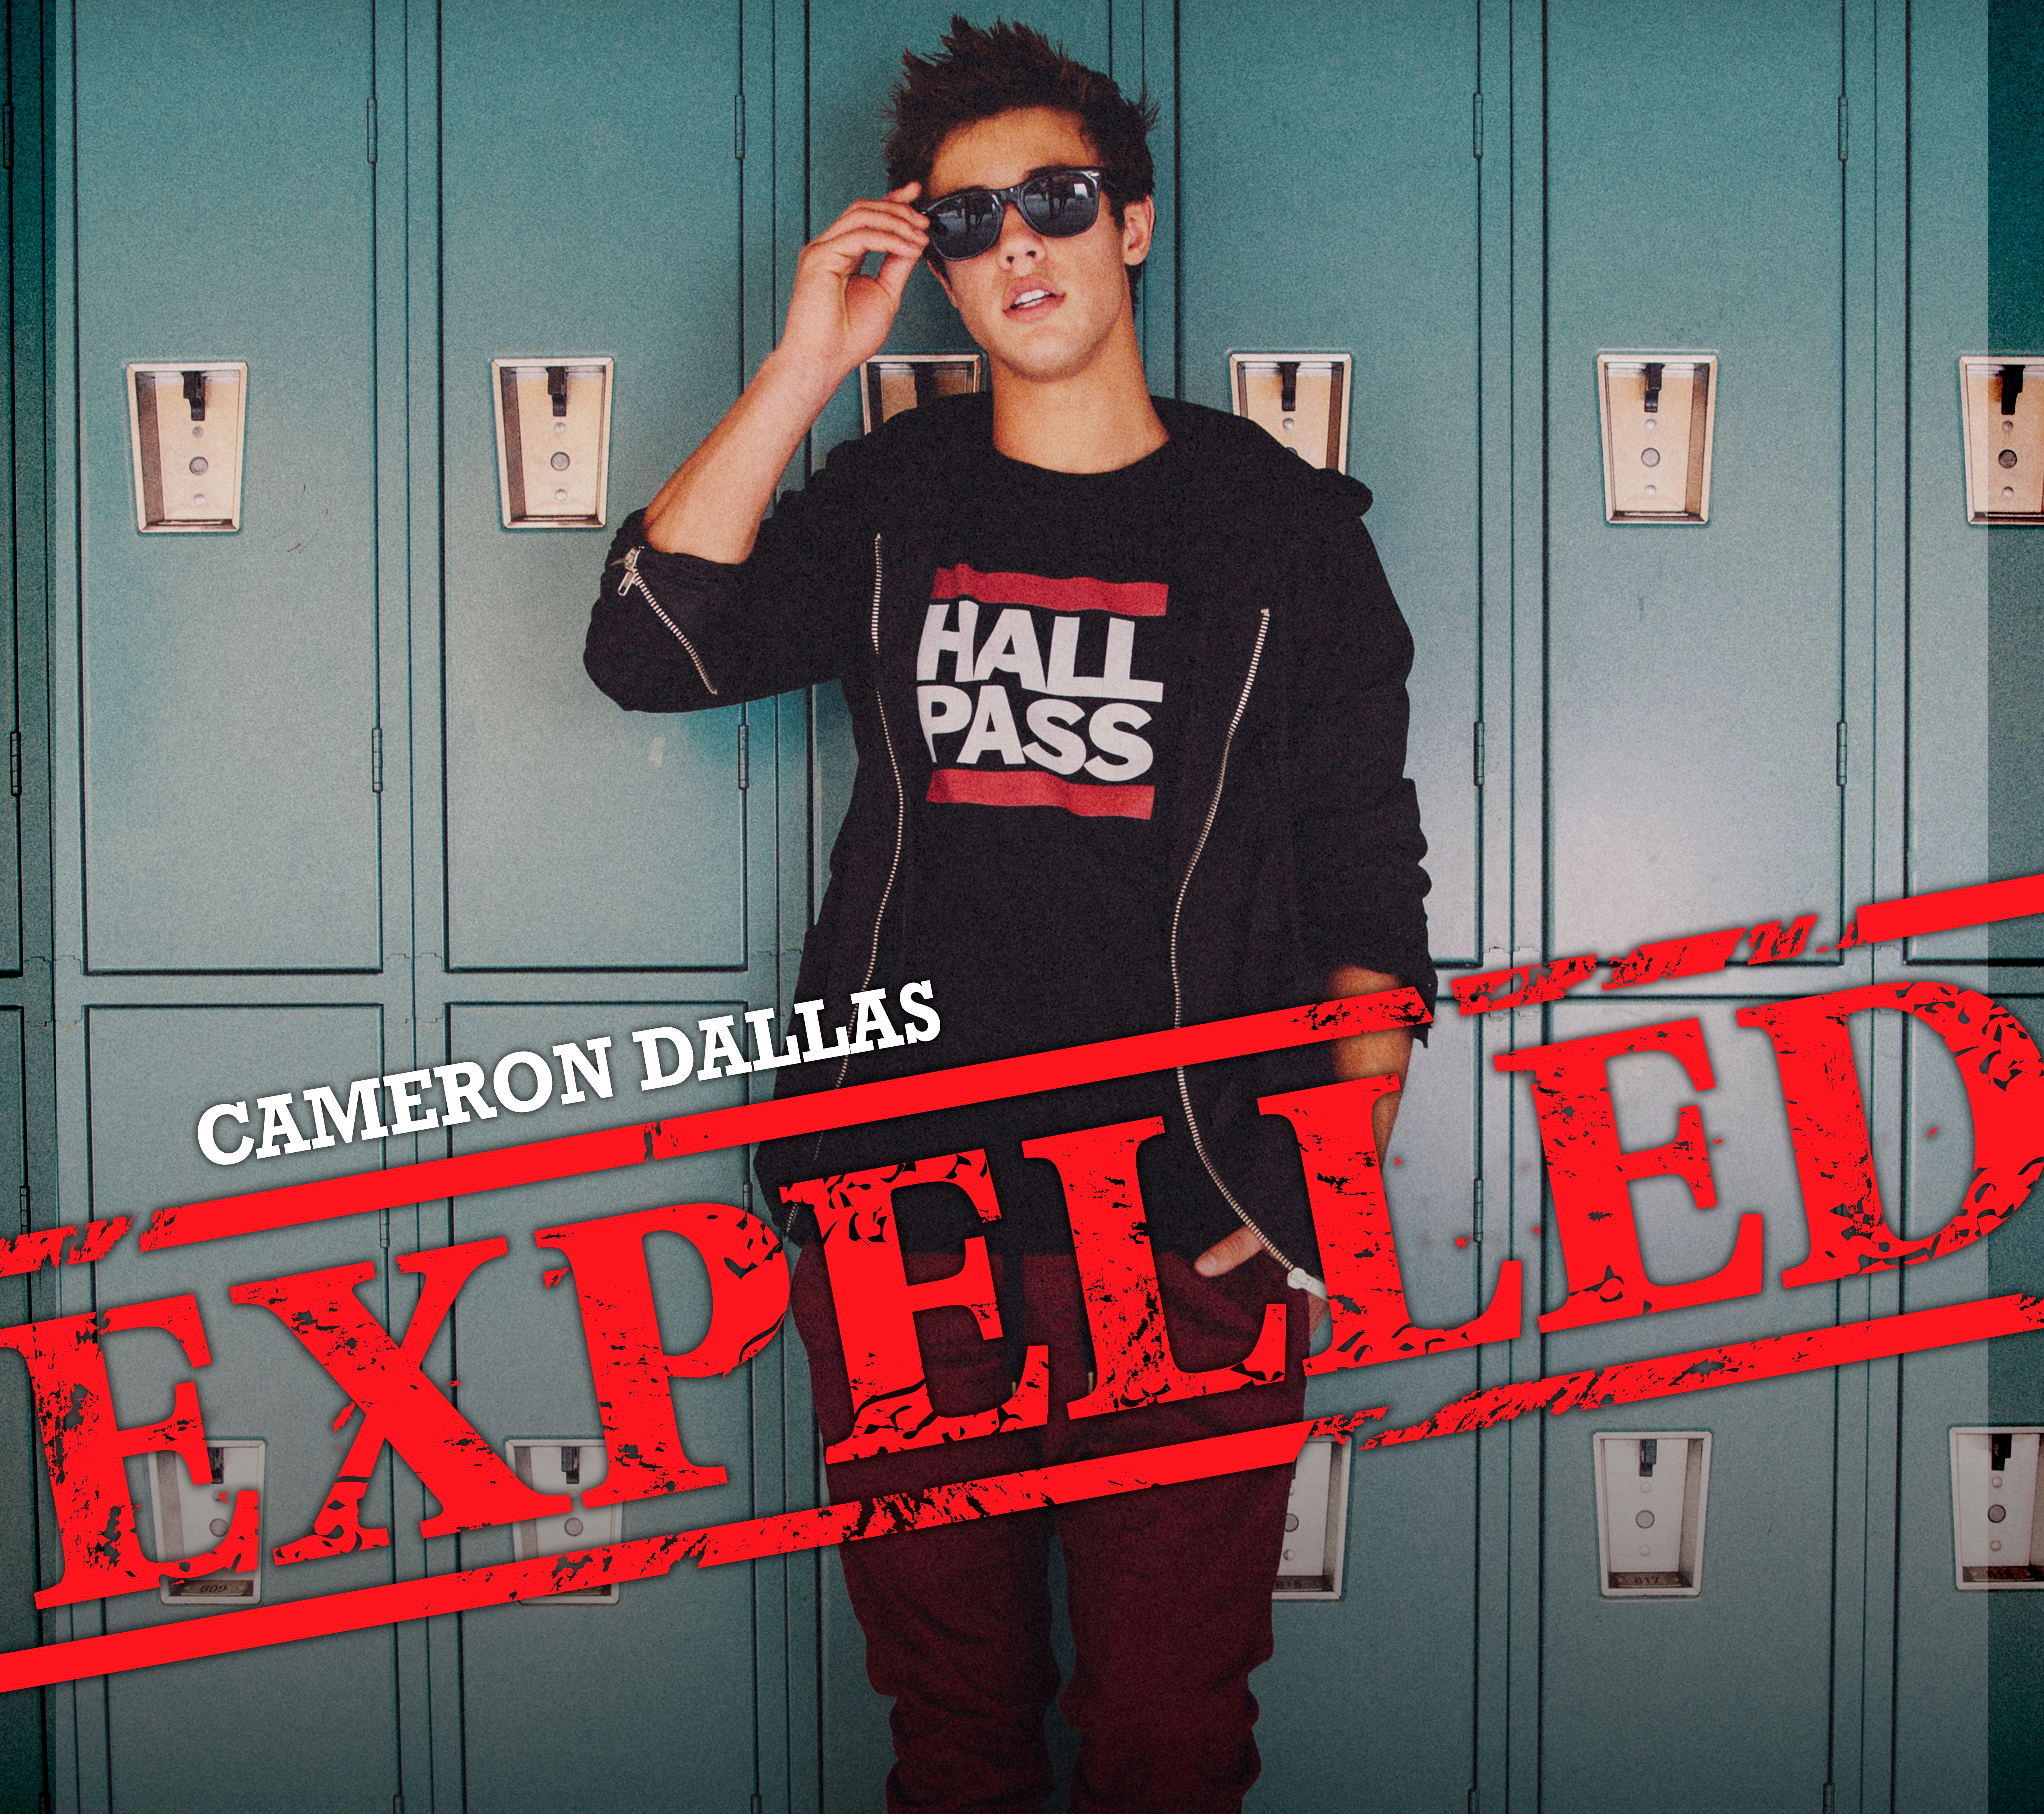 cameron-dallas-expelled.jpg